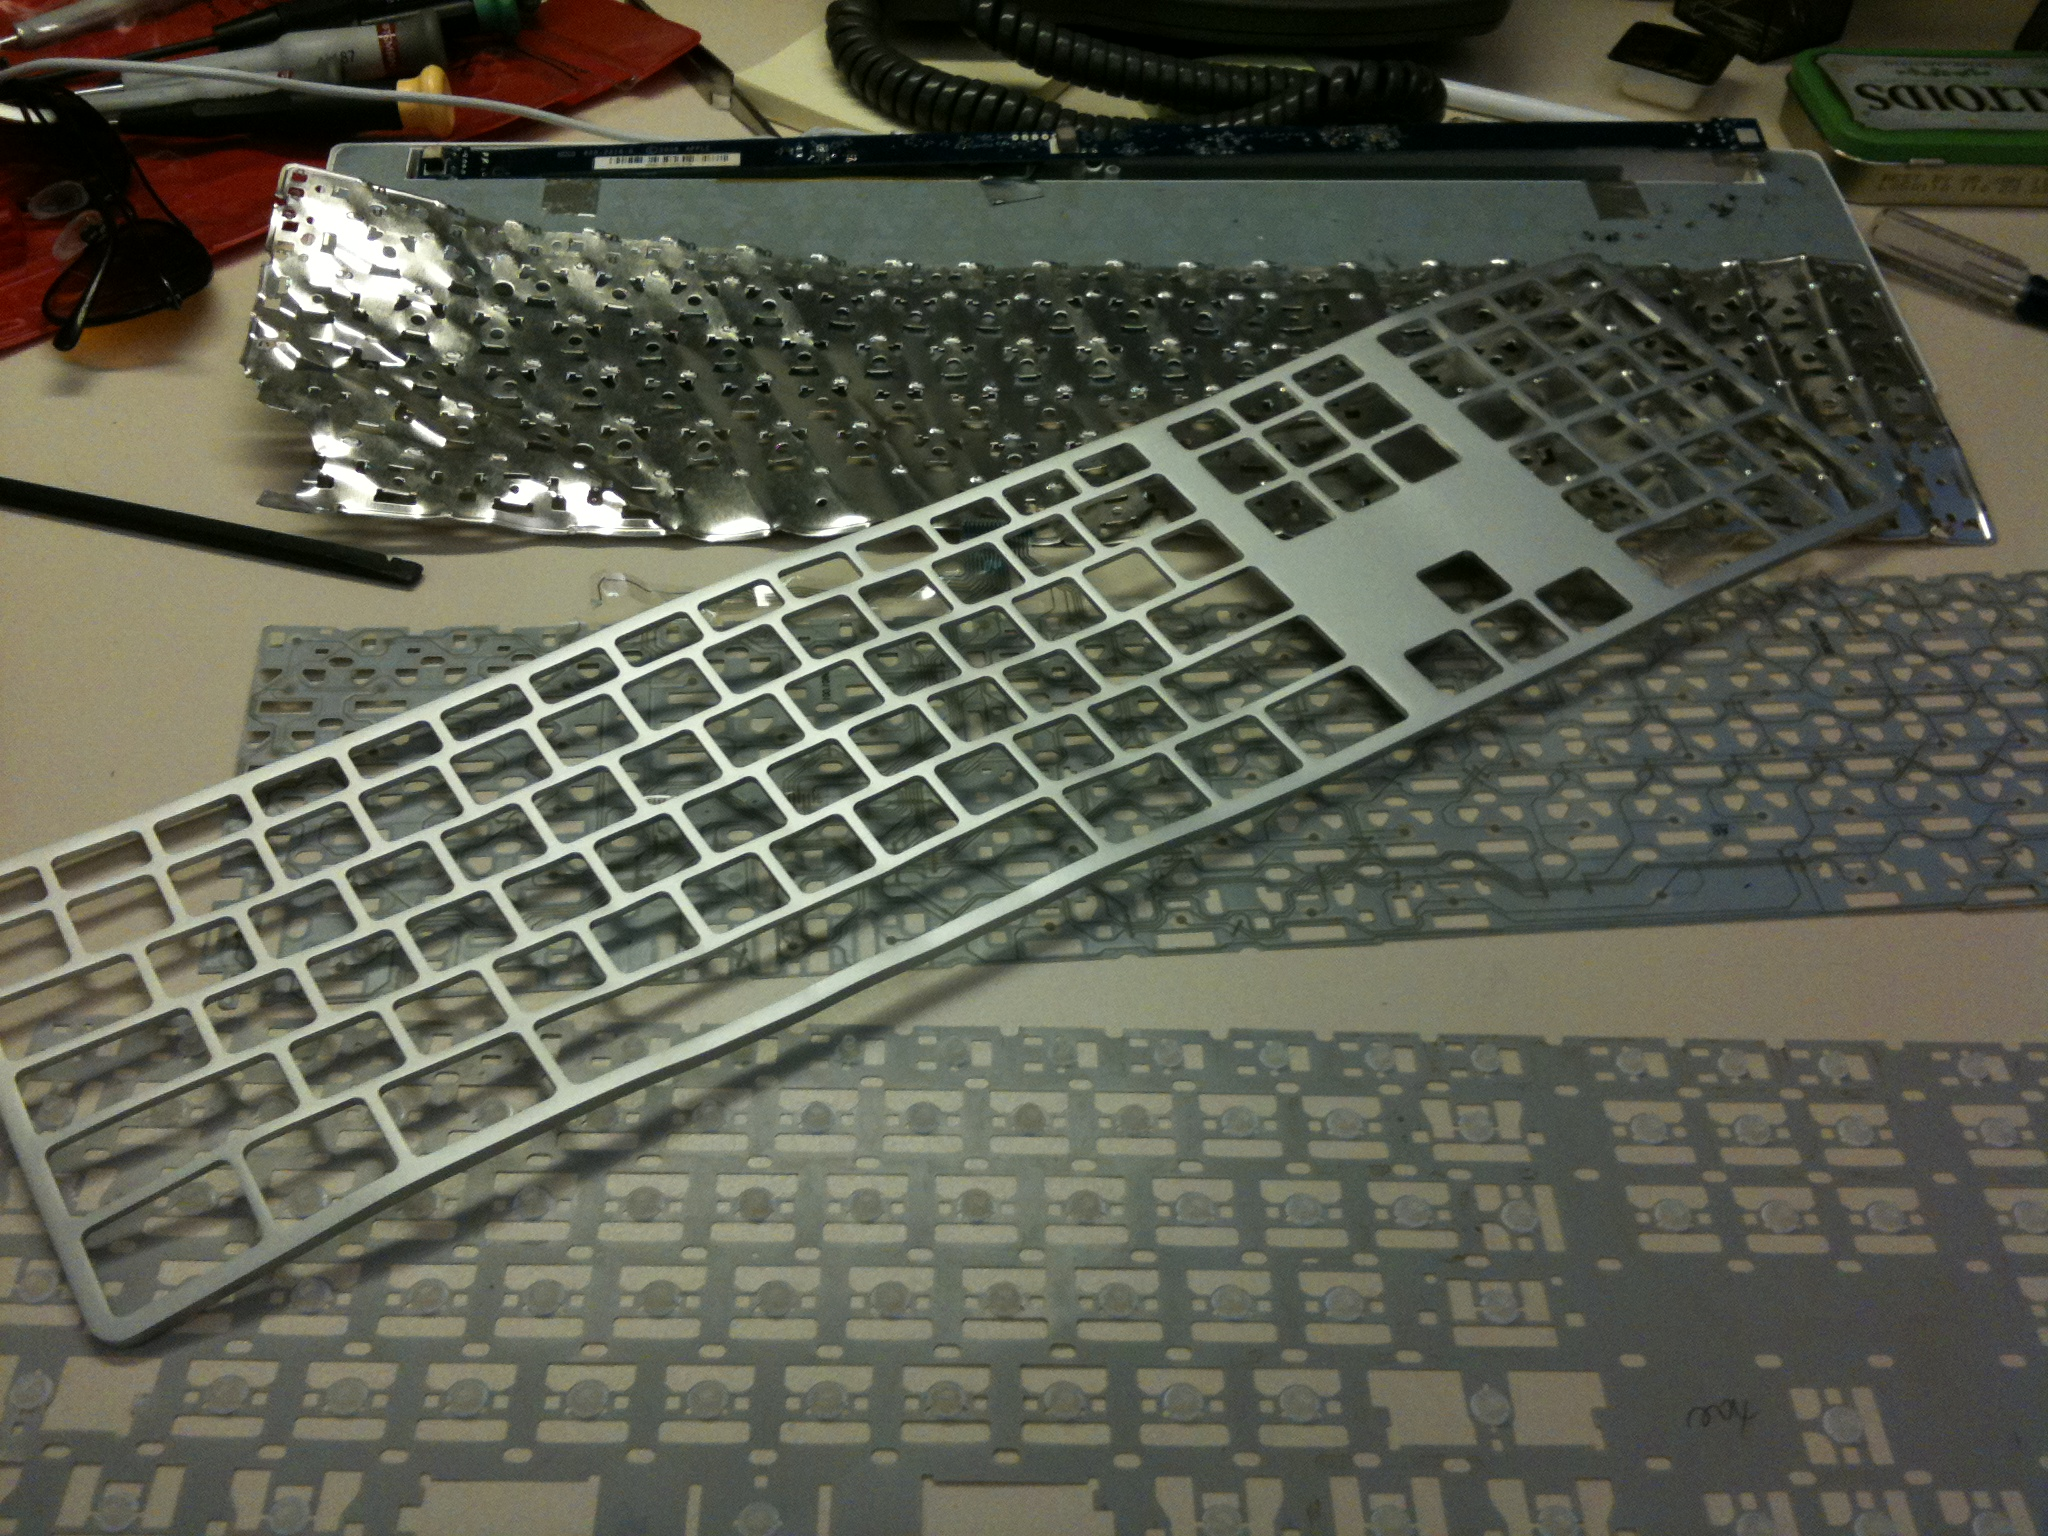 How to disassemble the keyboard 5